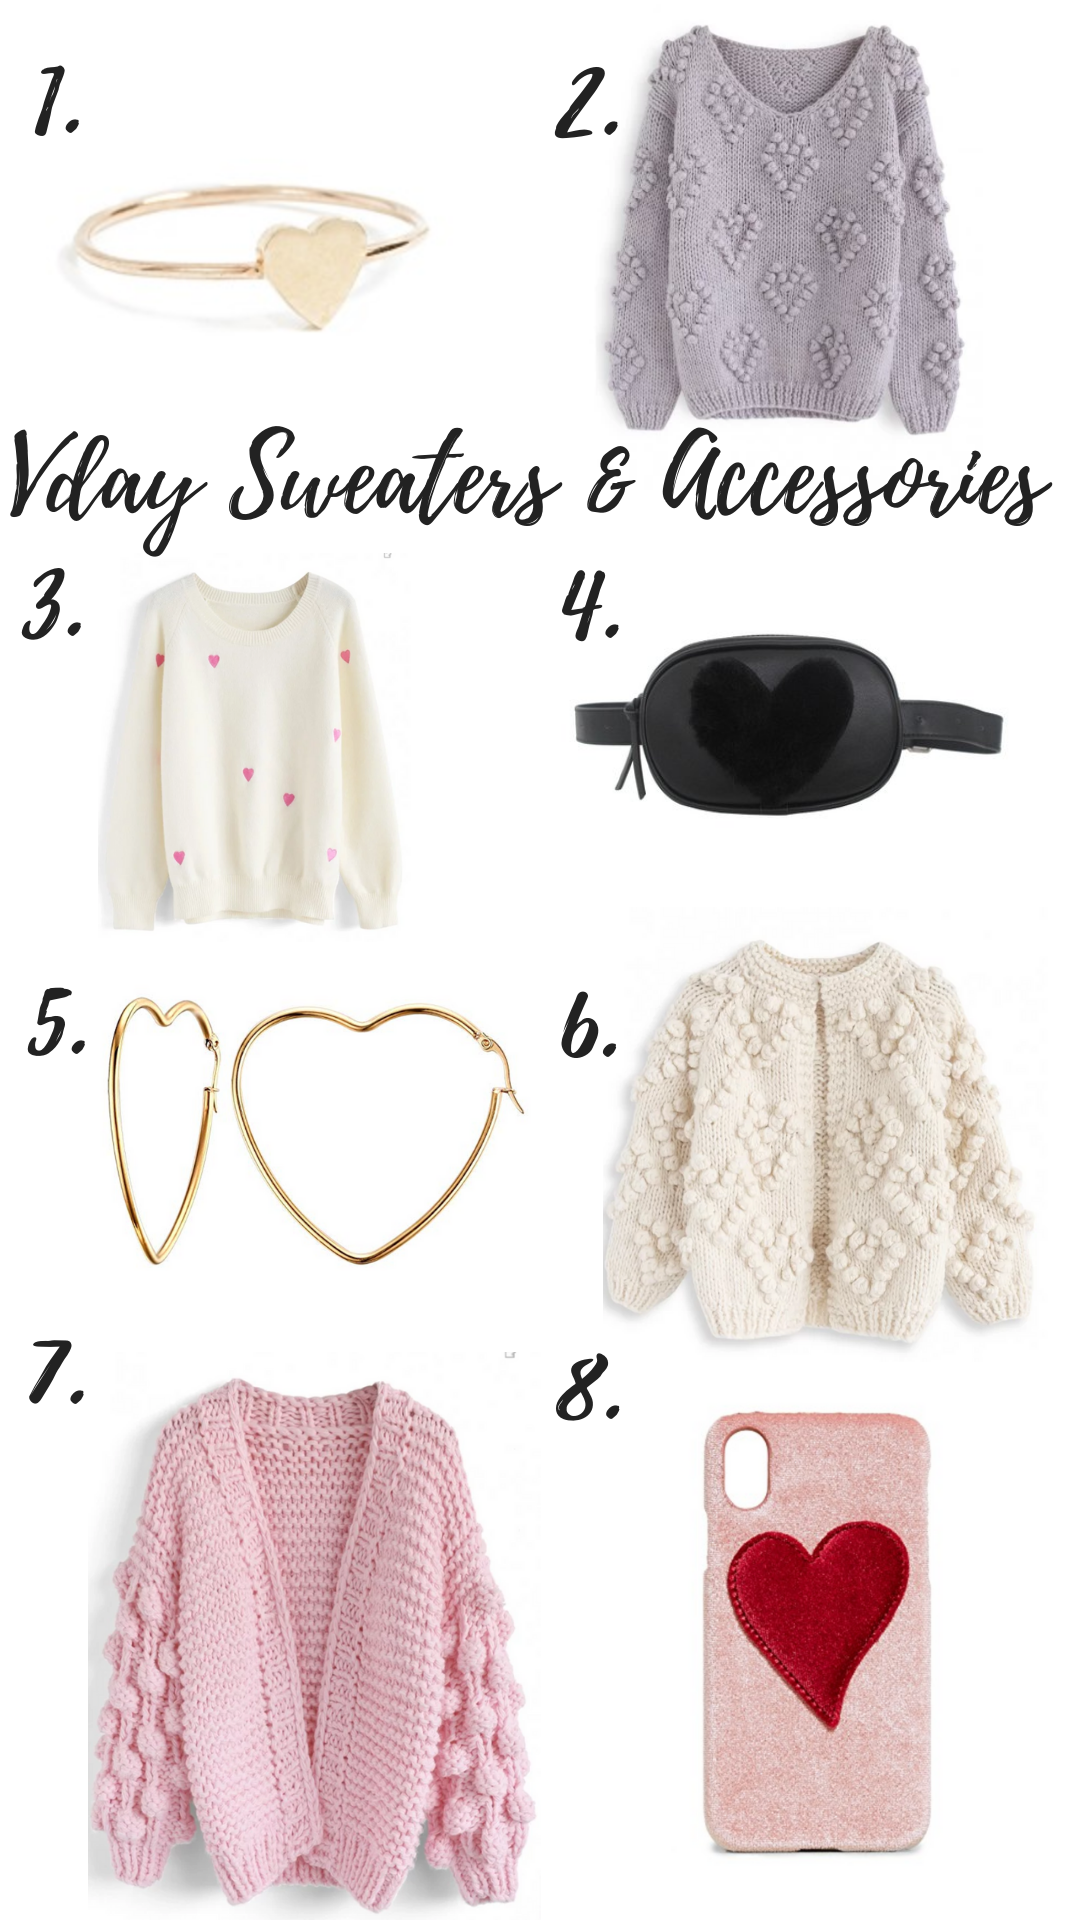 Vday Sweaters and Accessories